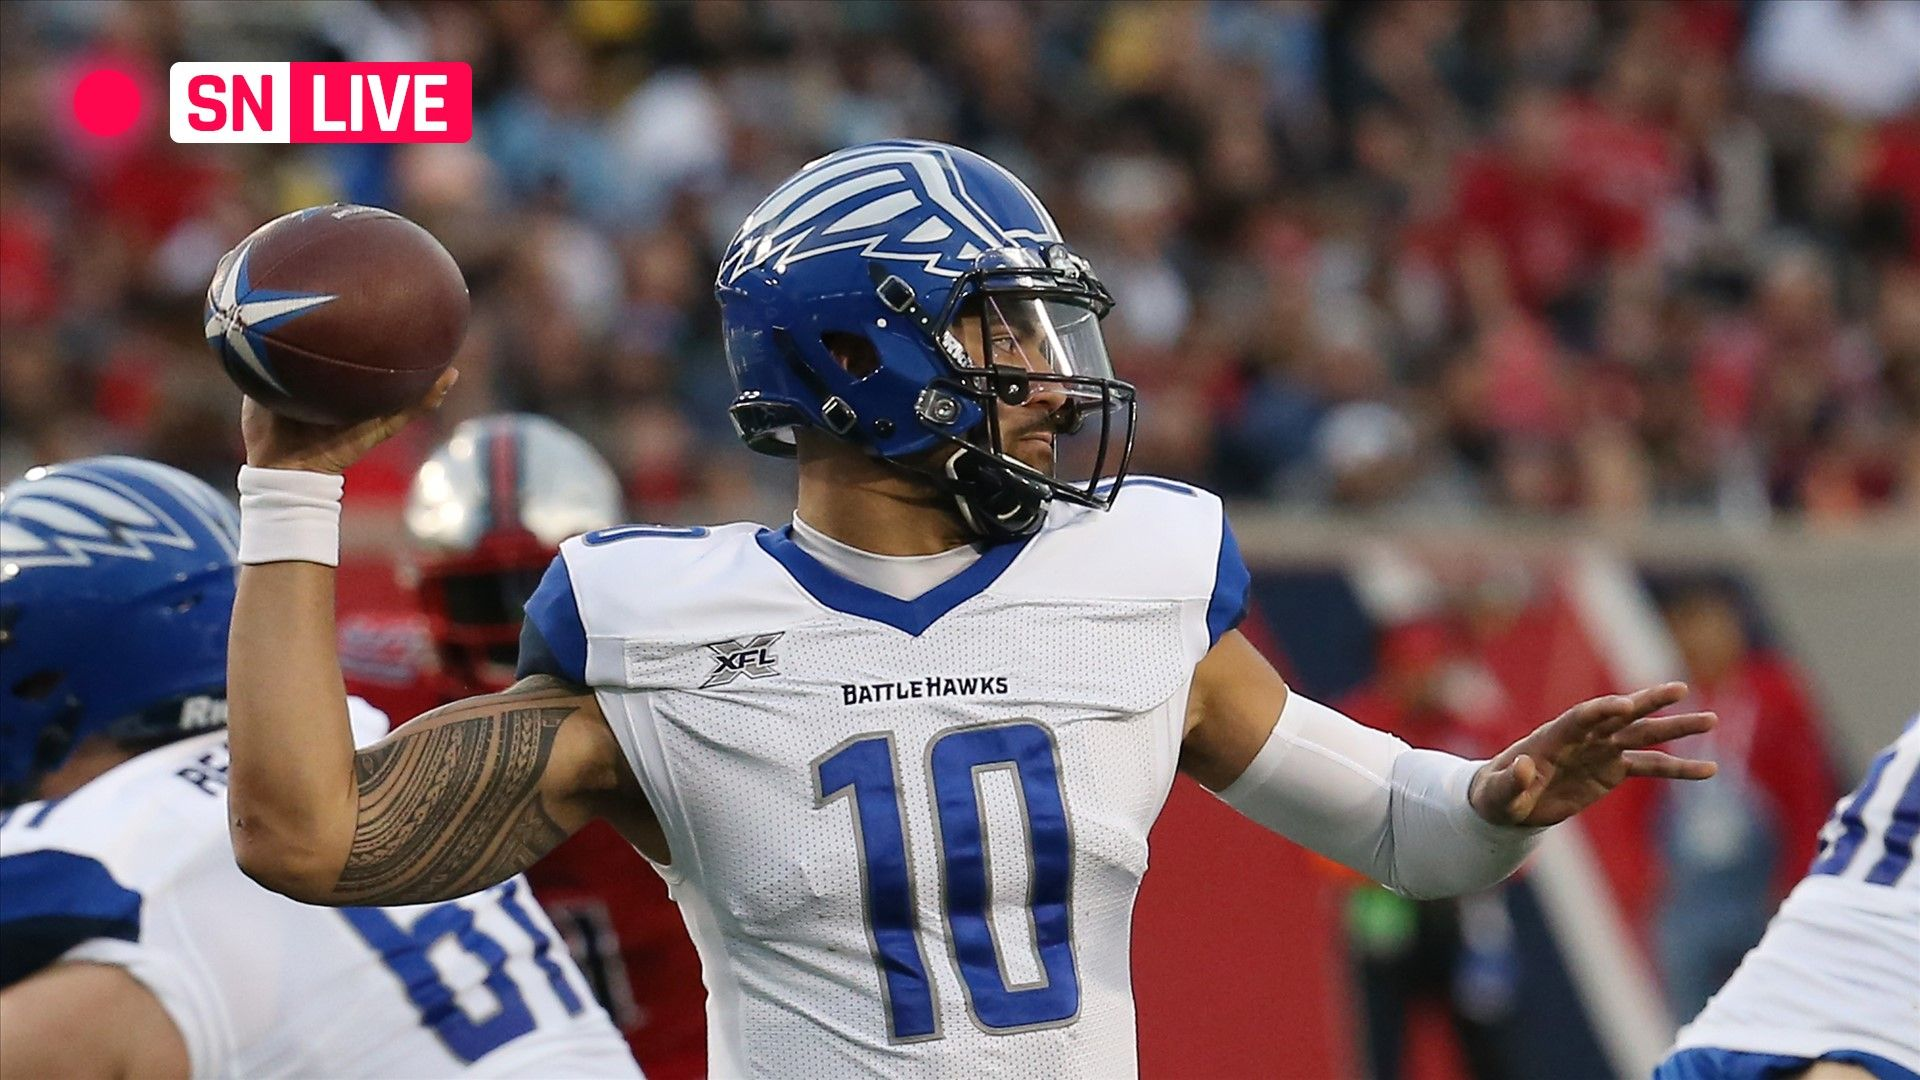 XFL scores Week 3 Live updates, results, highlights from